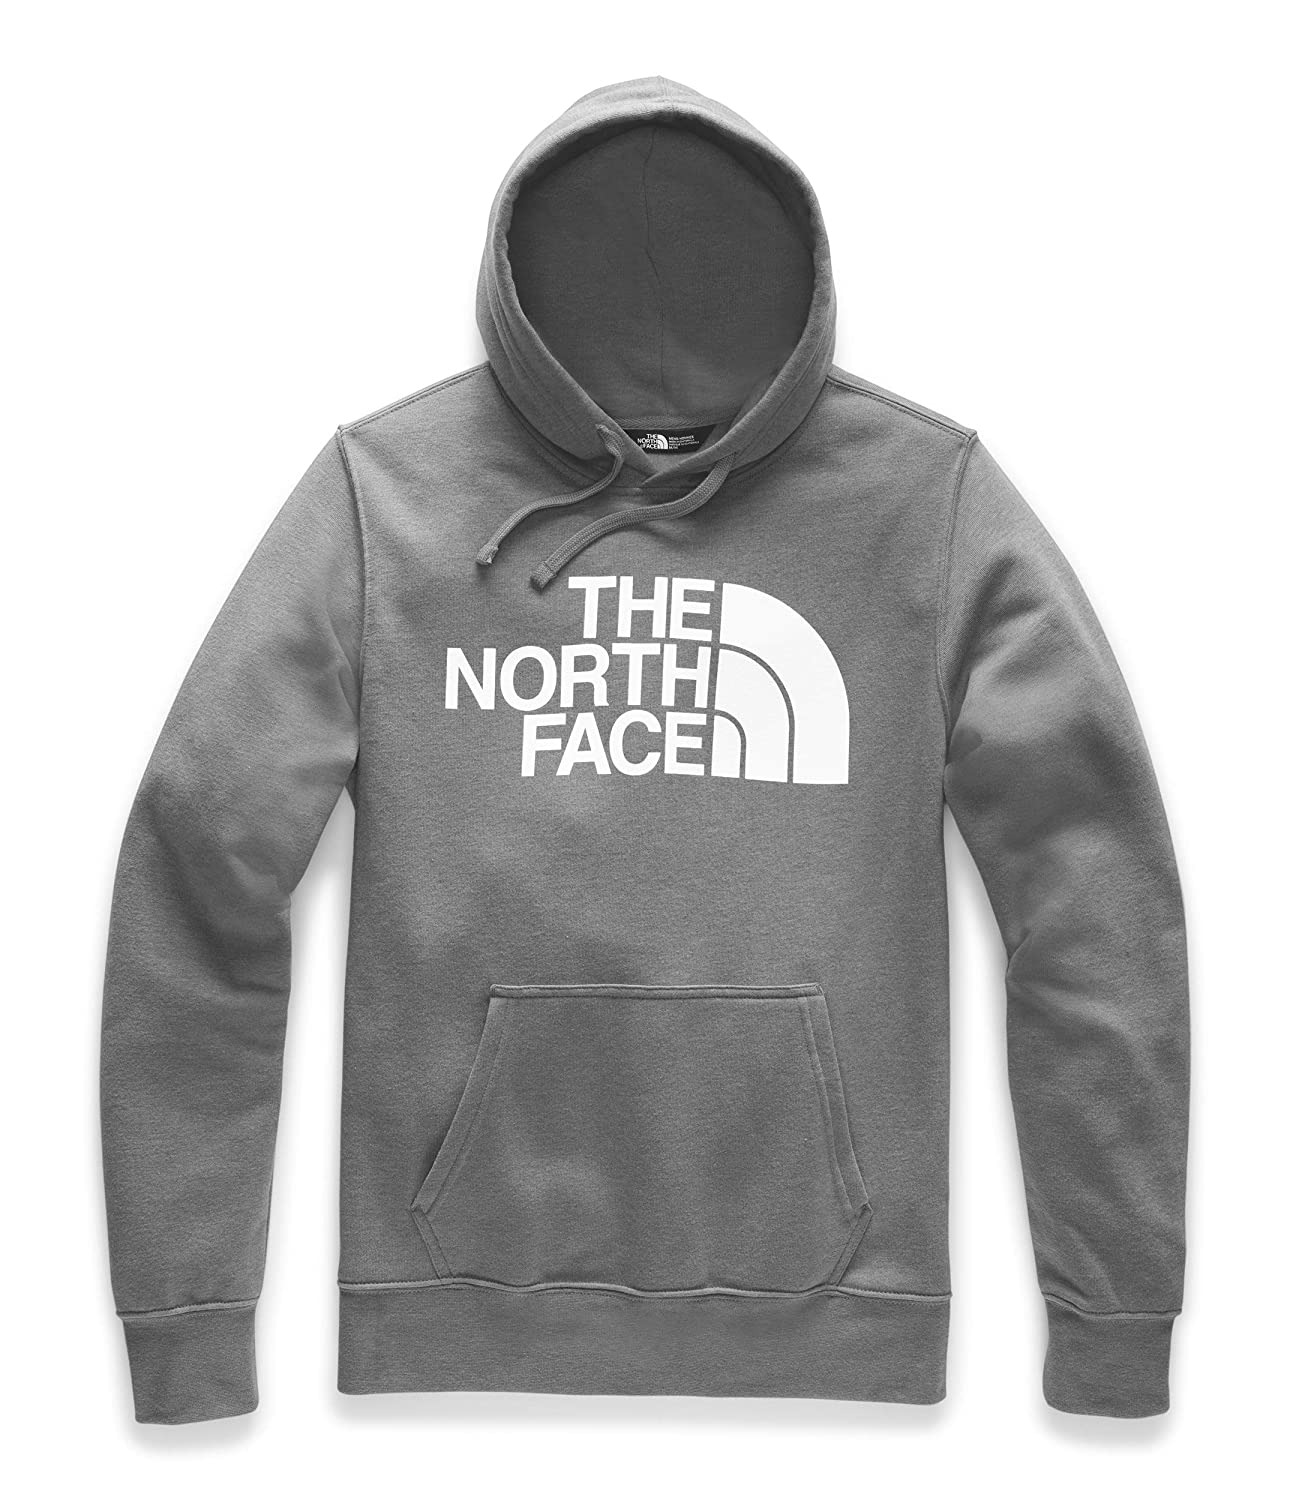 7f54b0d3c The North Face Men's Half Dome Pullover Hoodie